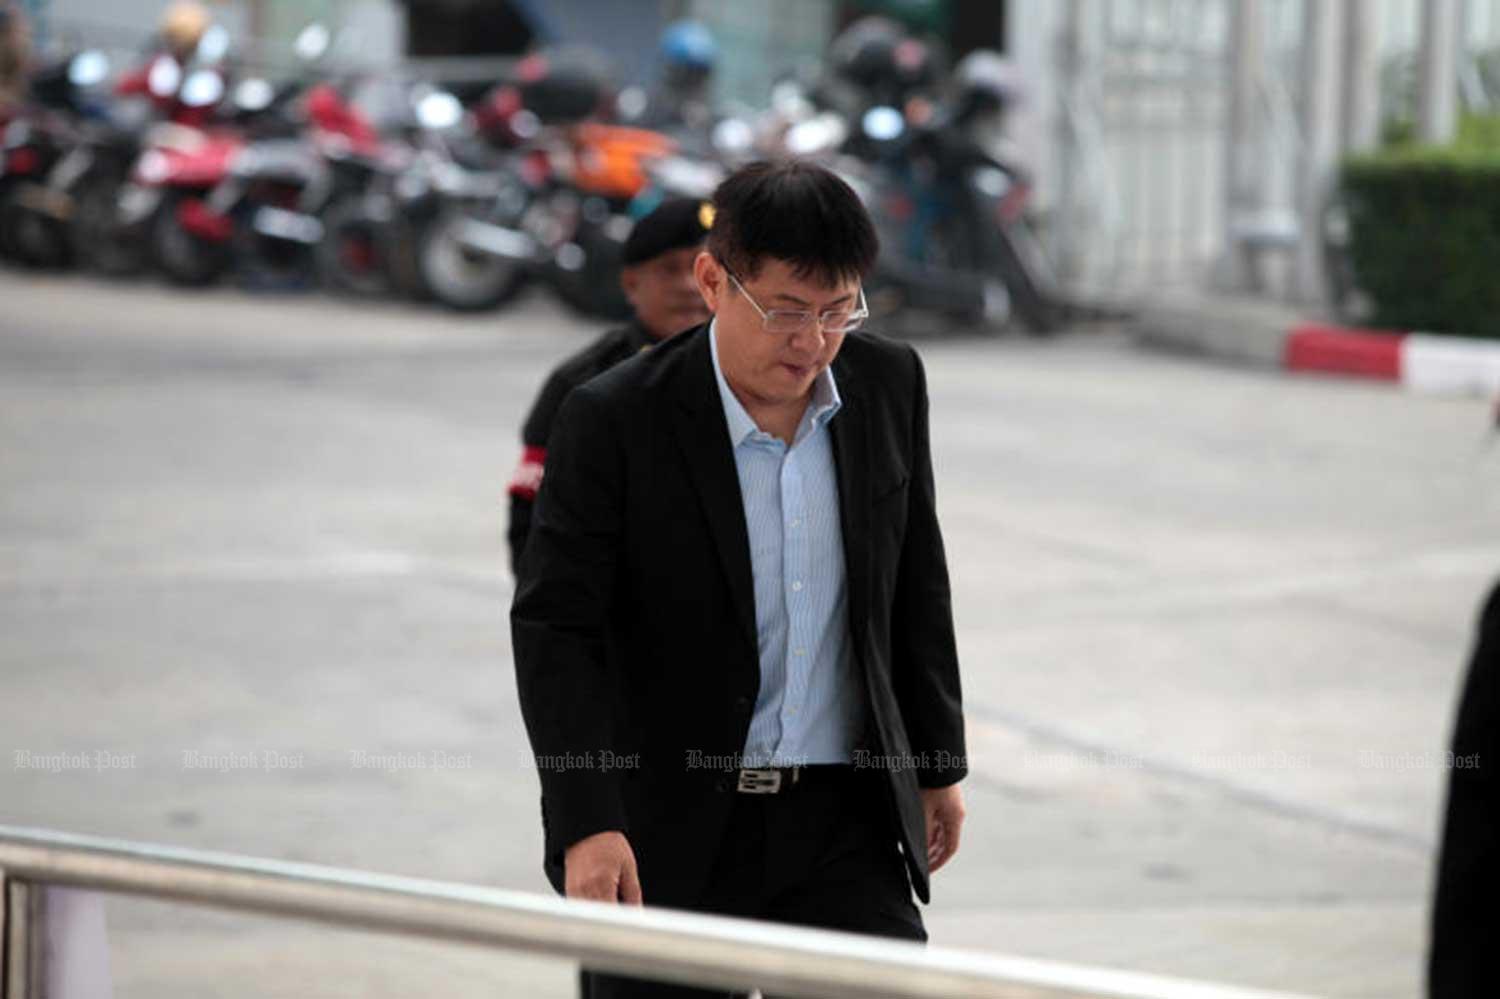 Former TV news anchor Sorrayuth Suthassanachinda arrives at the Central Criminal Court for Corruption and Misconduct Cases in Bangkok on Tuesday morning to hear the Supreme Court's decision on his appeal. (Bangkok Post file photo)